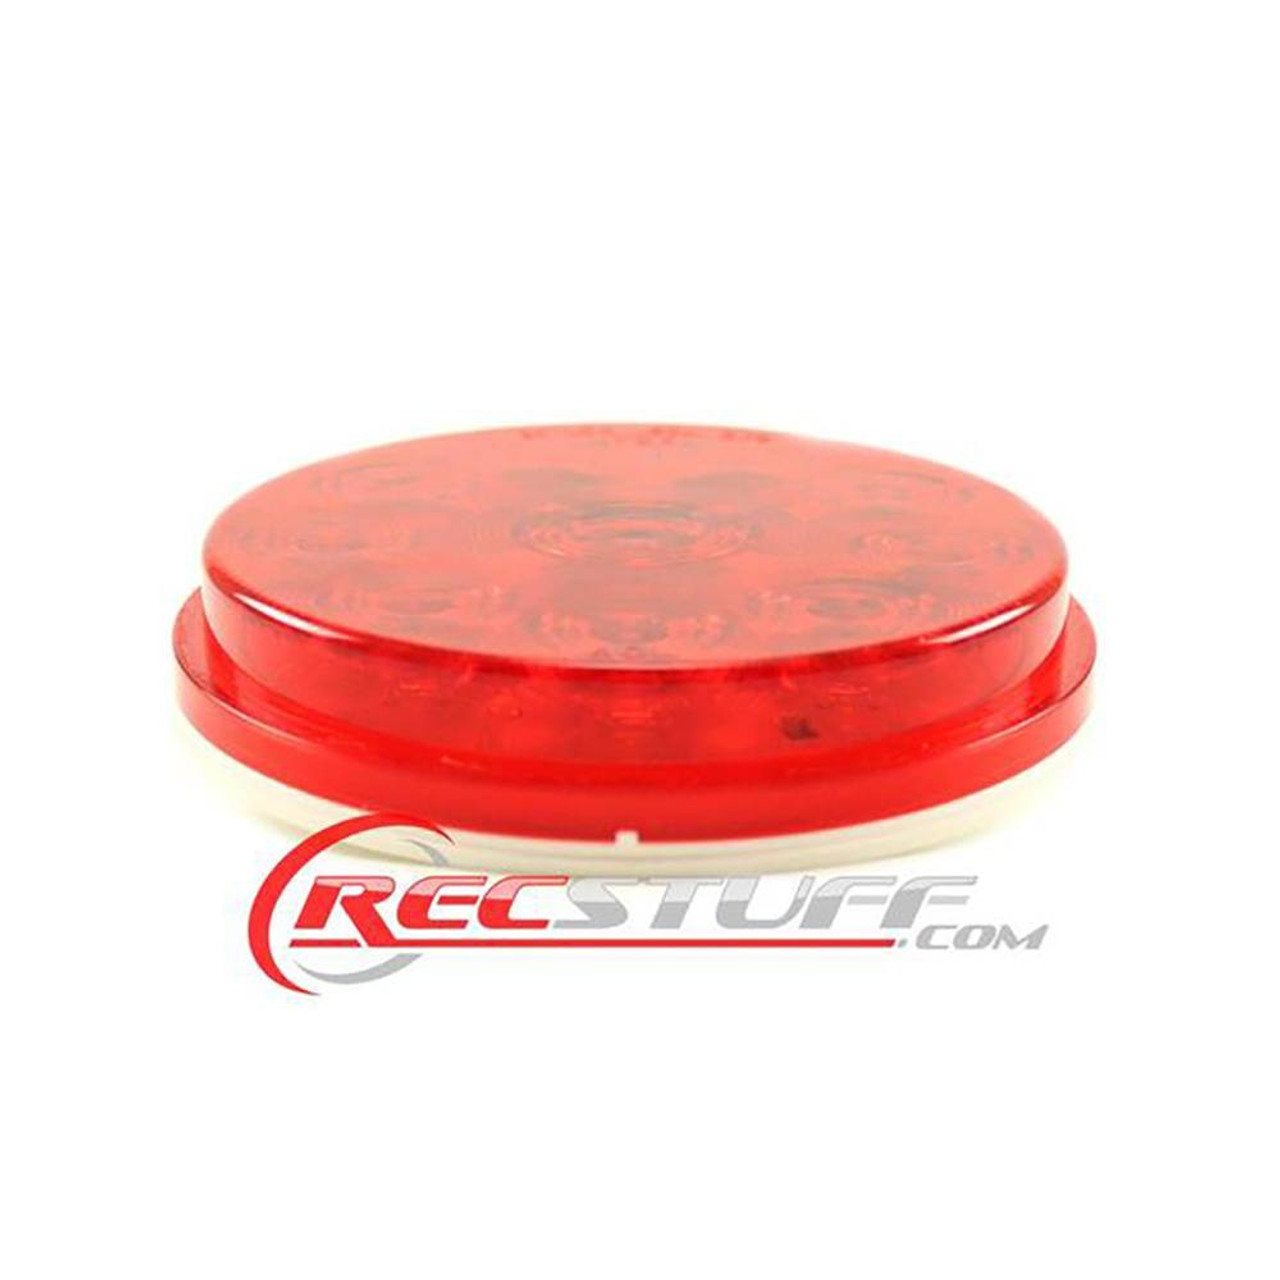 "LED 4"" Round Red Trailer Tail Light / Turn Signal Light"